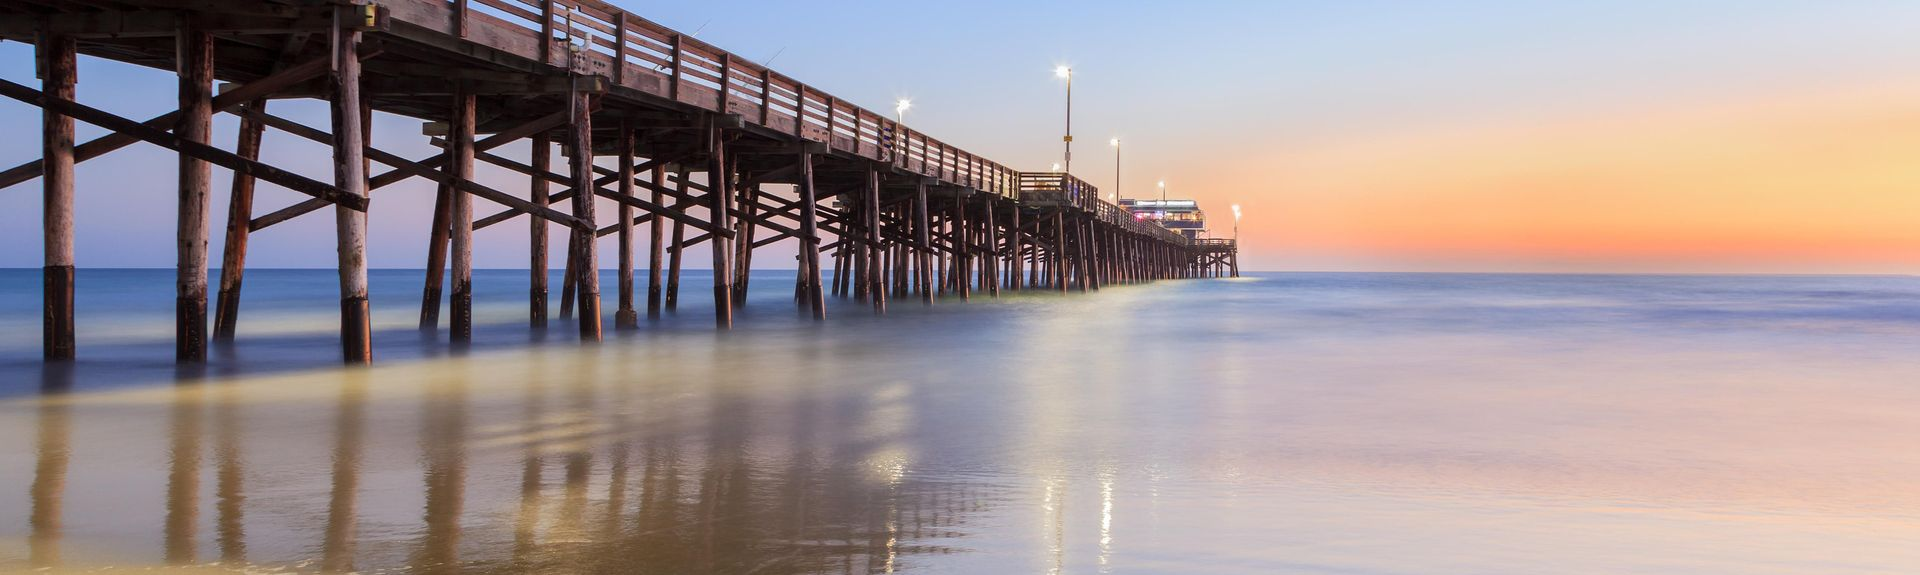 Vrbo Newport Pier Beach Vacation Als House